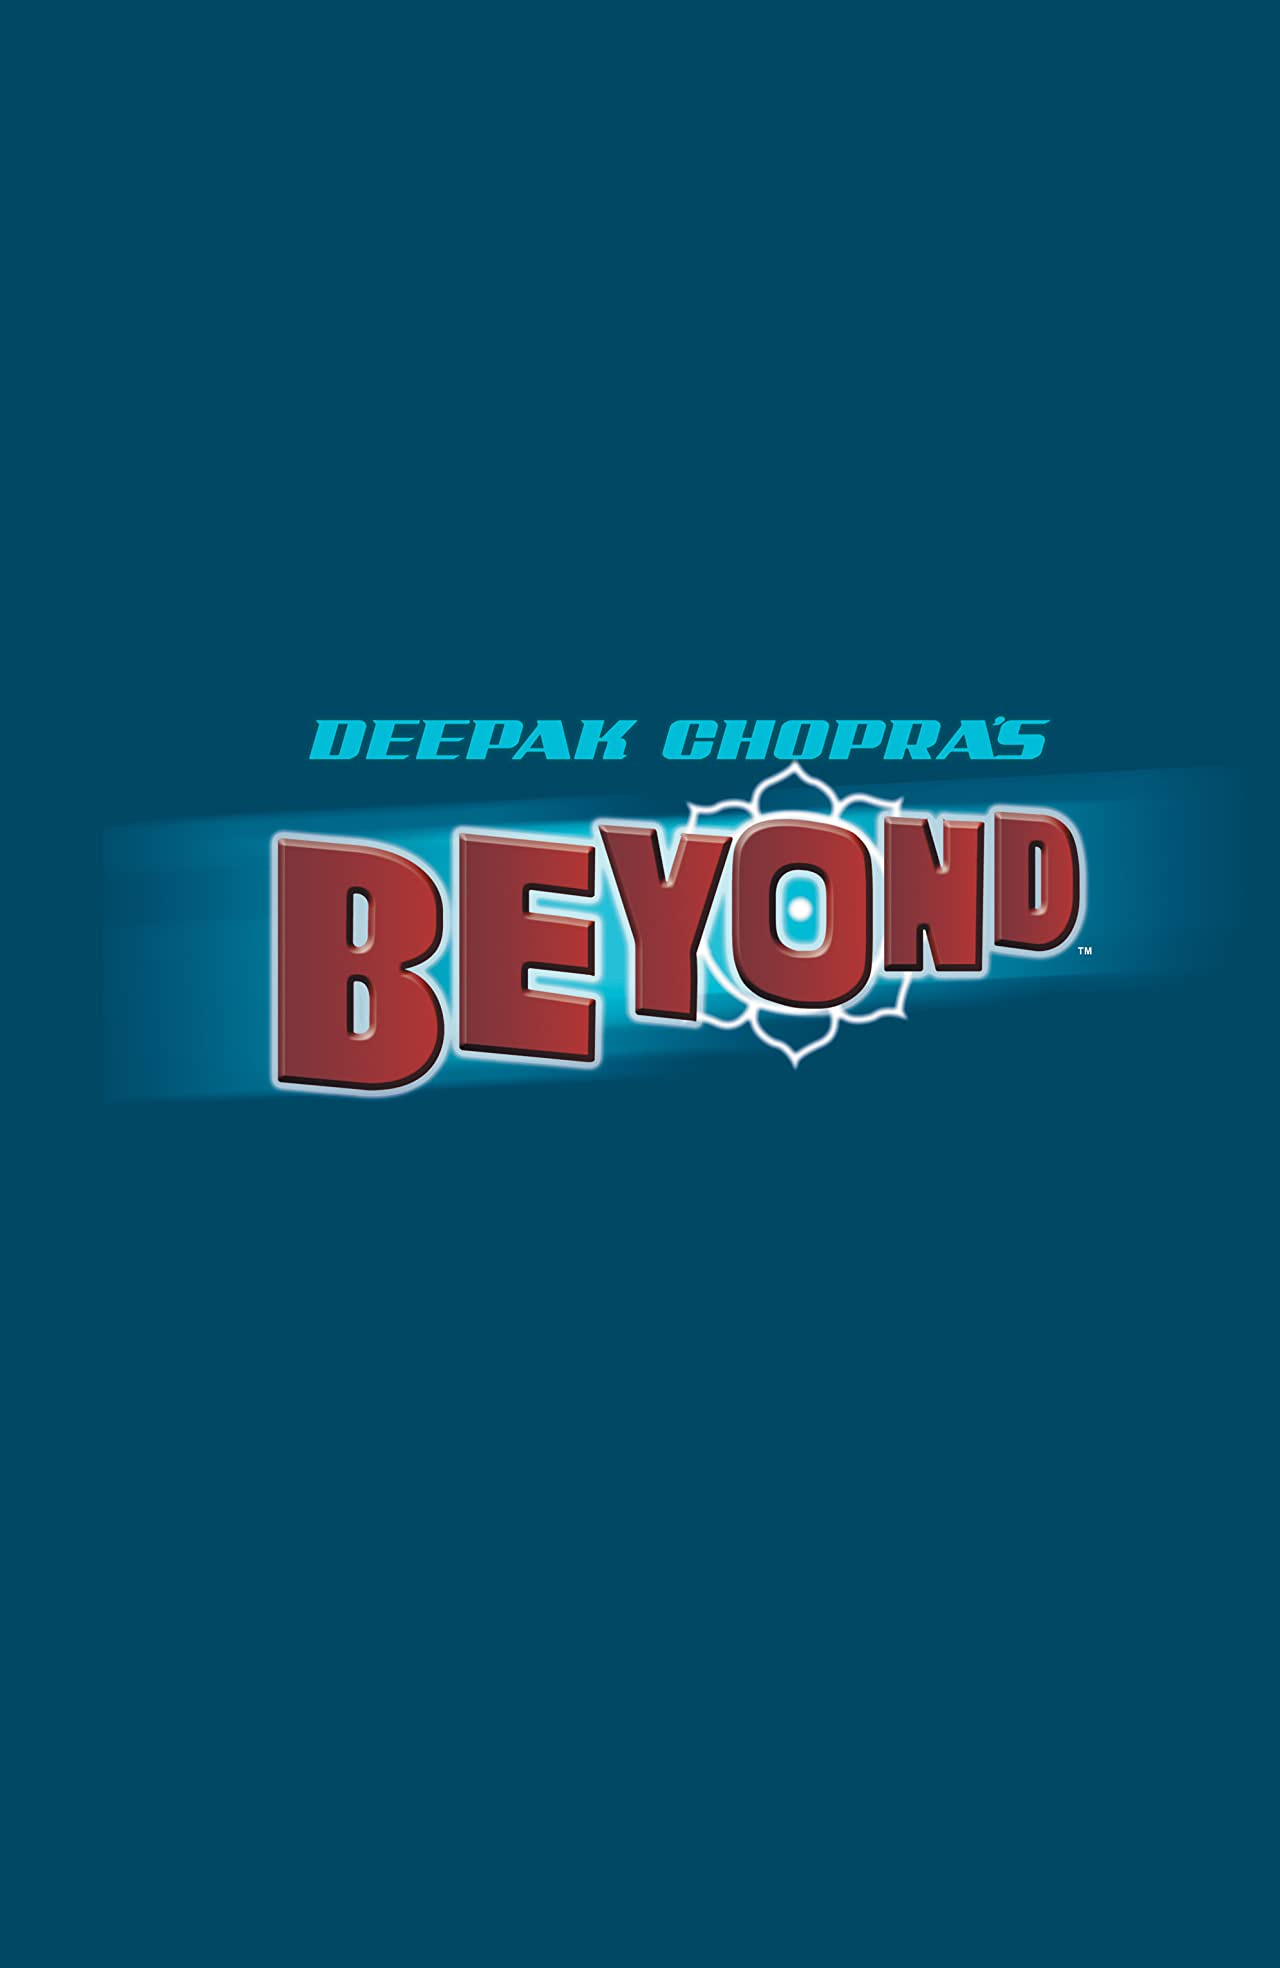 Deepak Chopra's Beyond Vol. 1